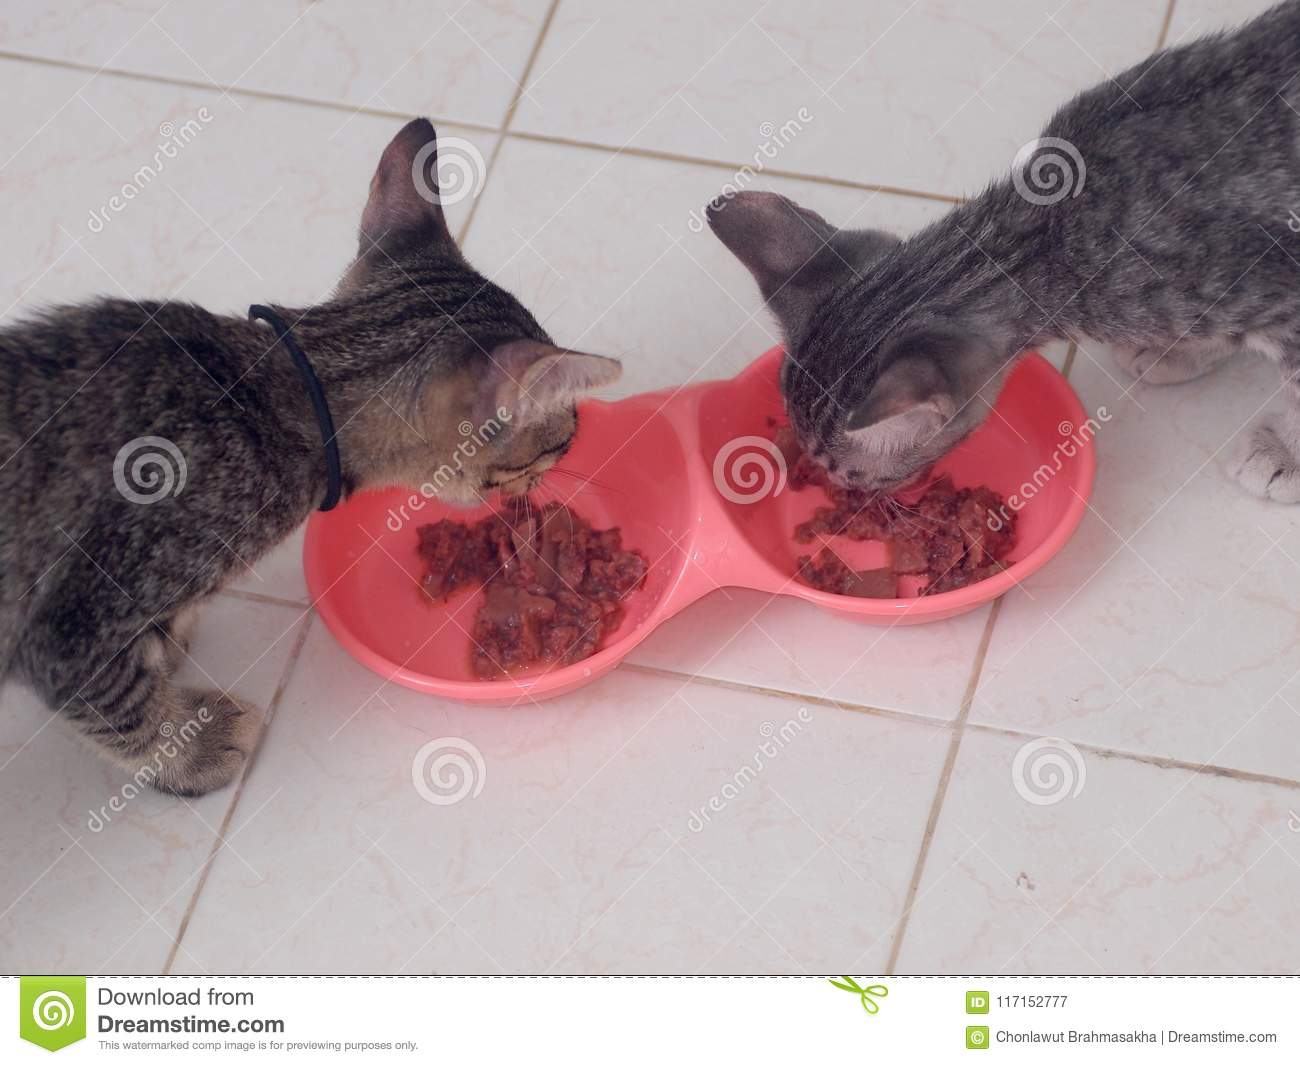 Cute Short Hair Young Asian Kitten Cats Eat Food In Bowl Stock Image